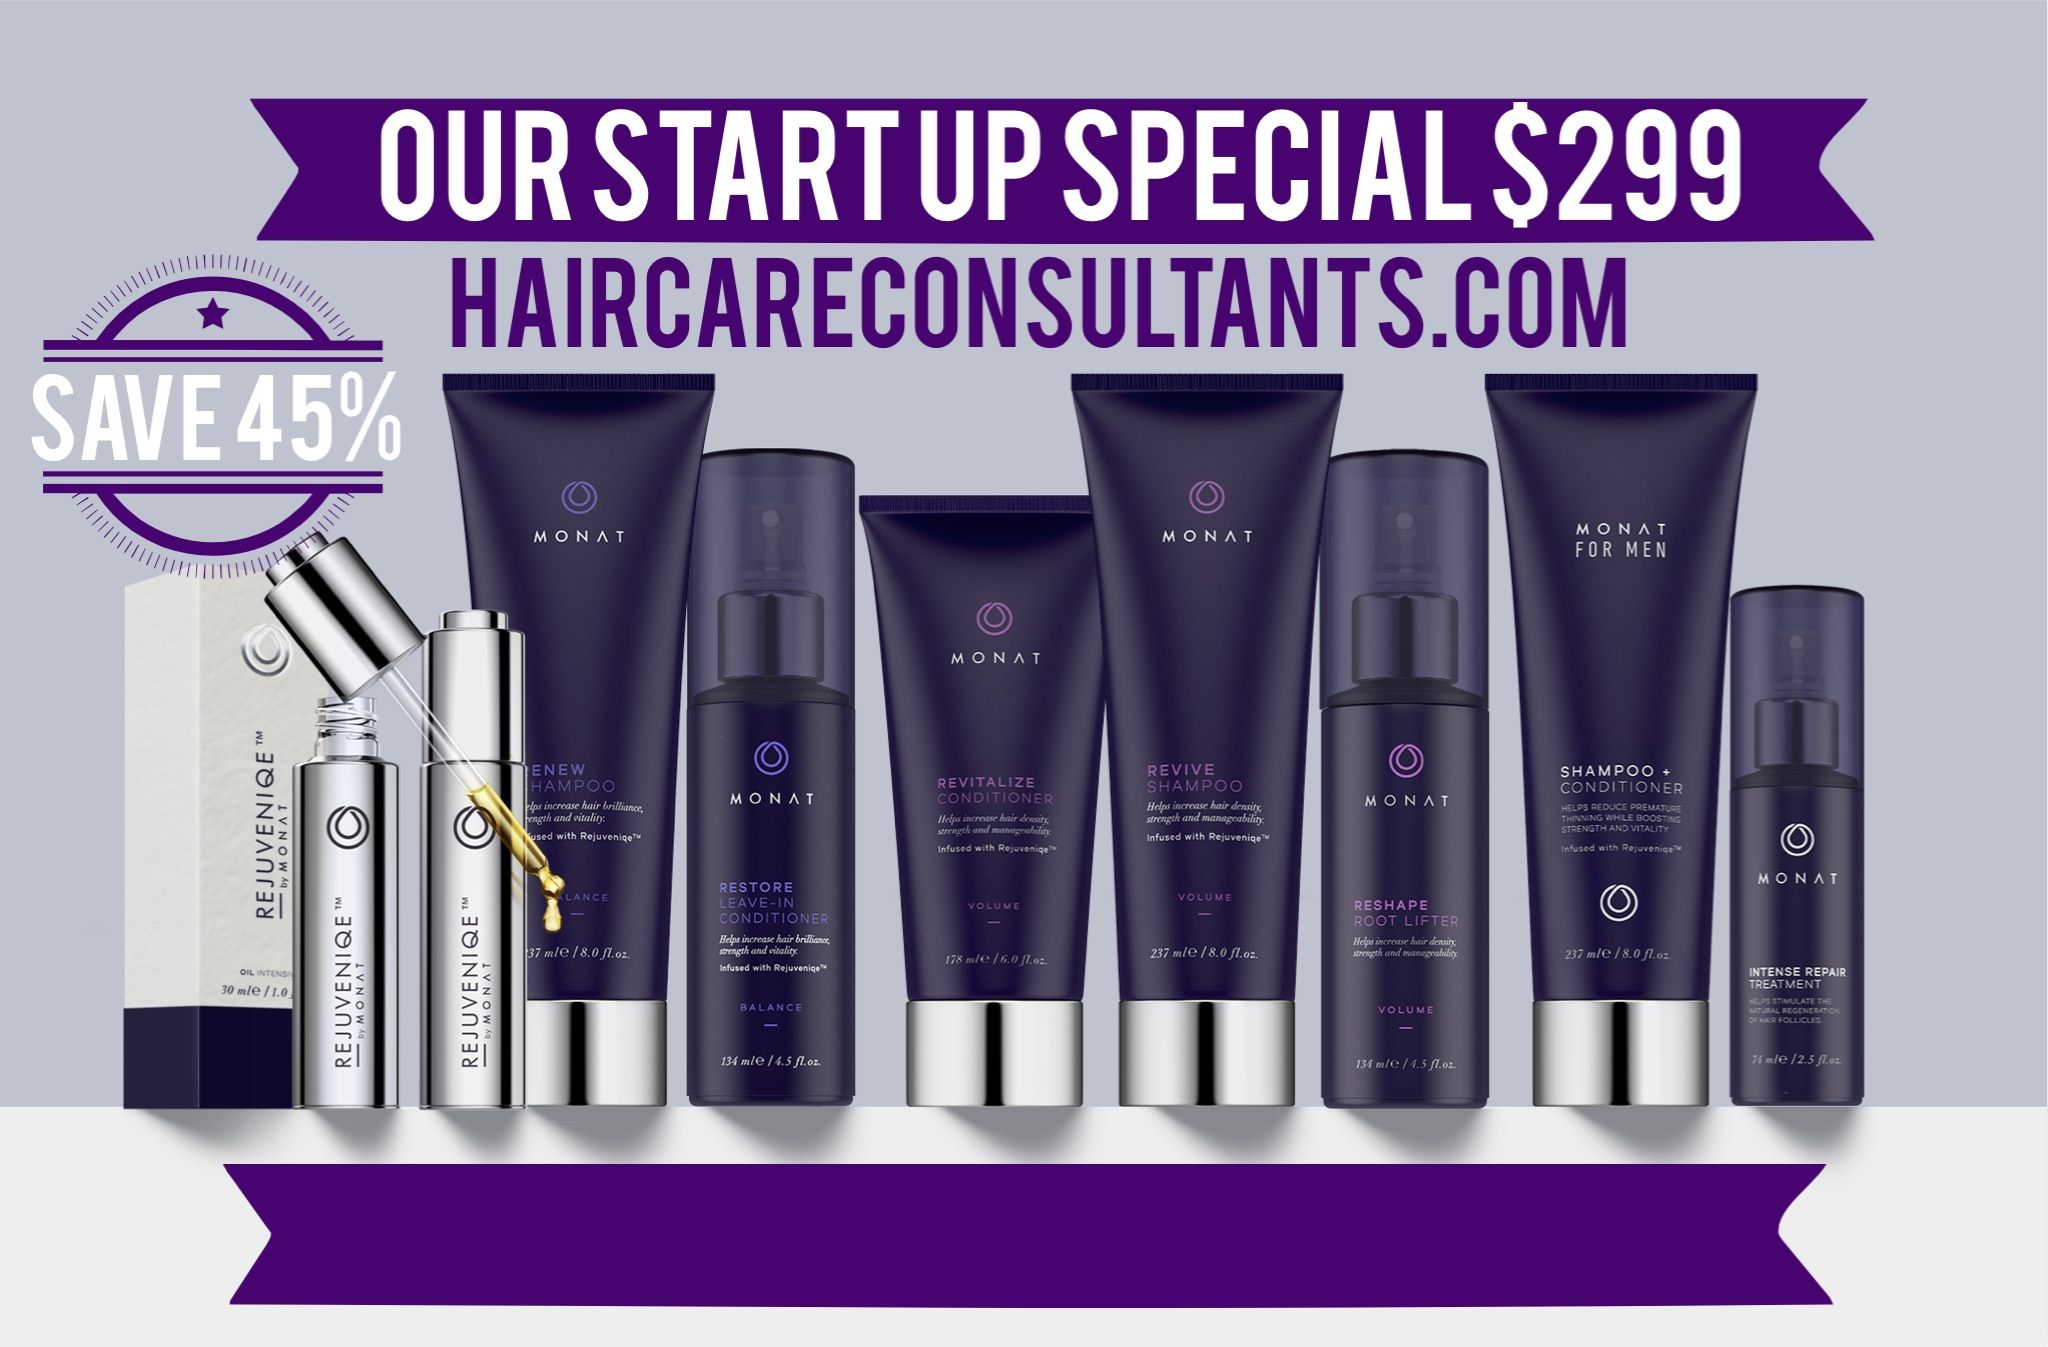 Enroll as a MONAT Market Partner for 99 and take